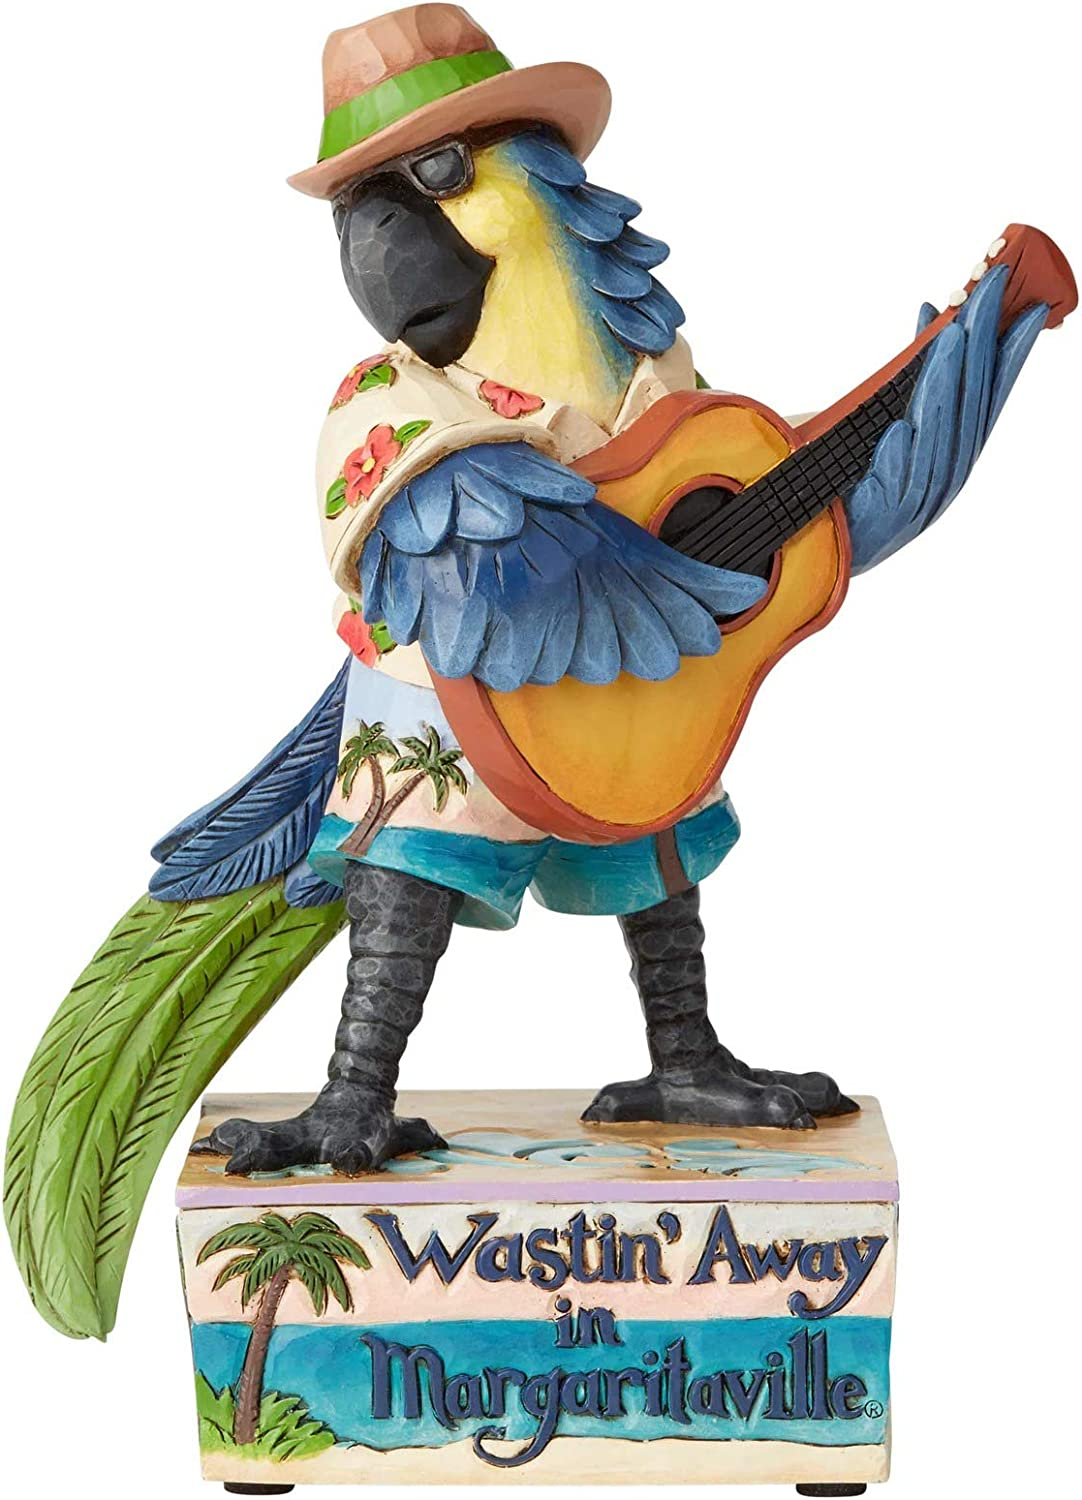 Enesco Margaritaville by Jim Shore Parrot with Guitar Musical Figurine, 8.1